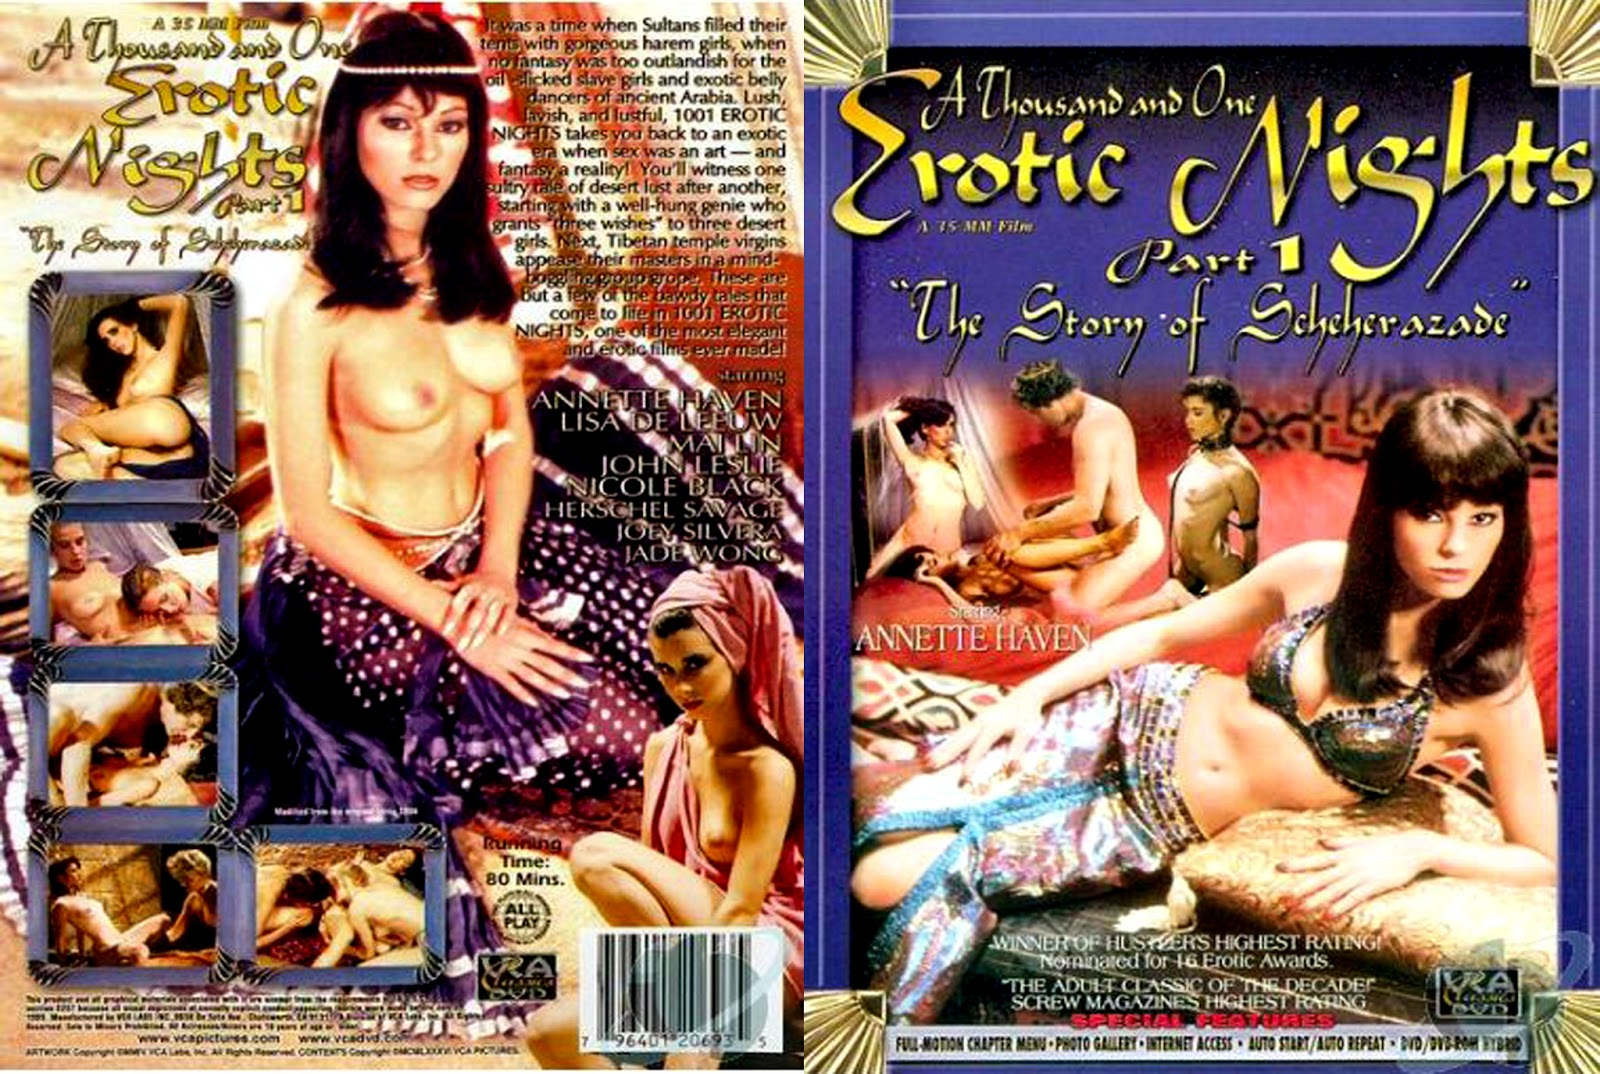 1001 erotic nights the sequal 1986 restored 8